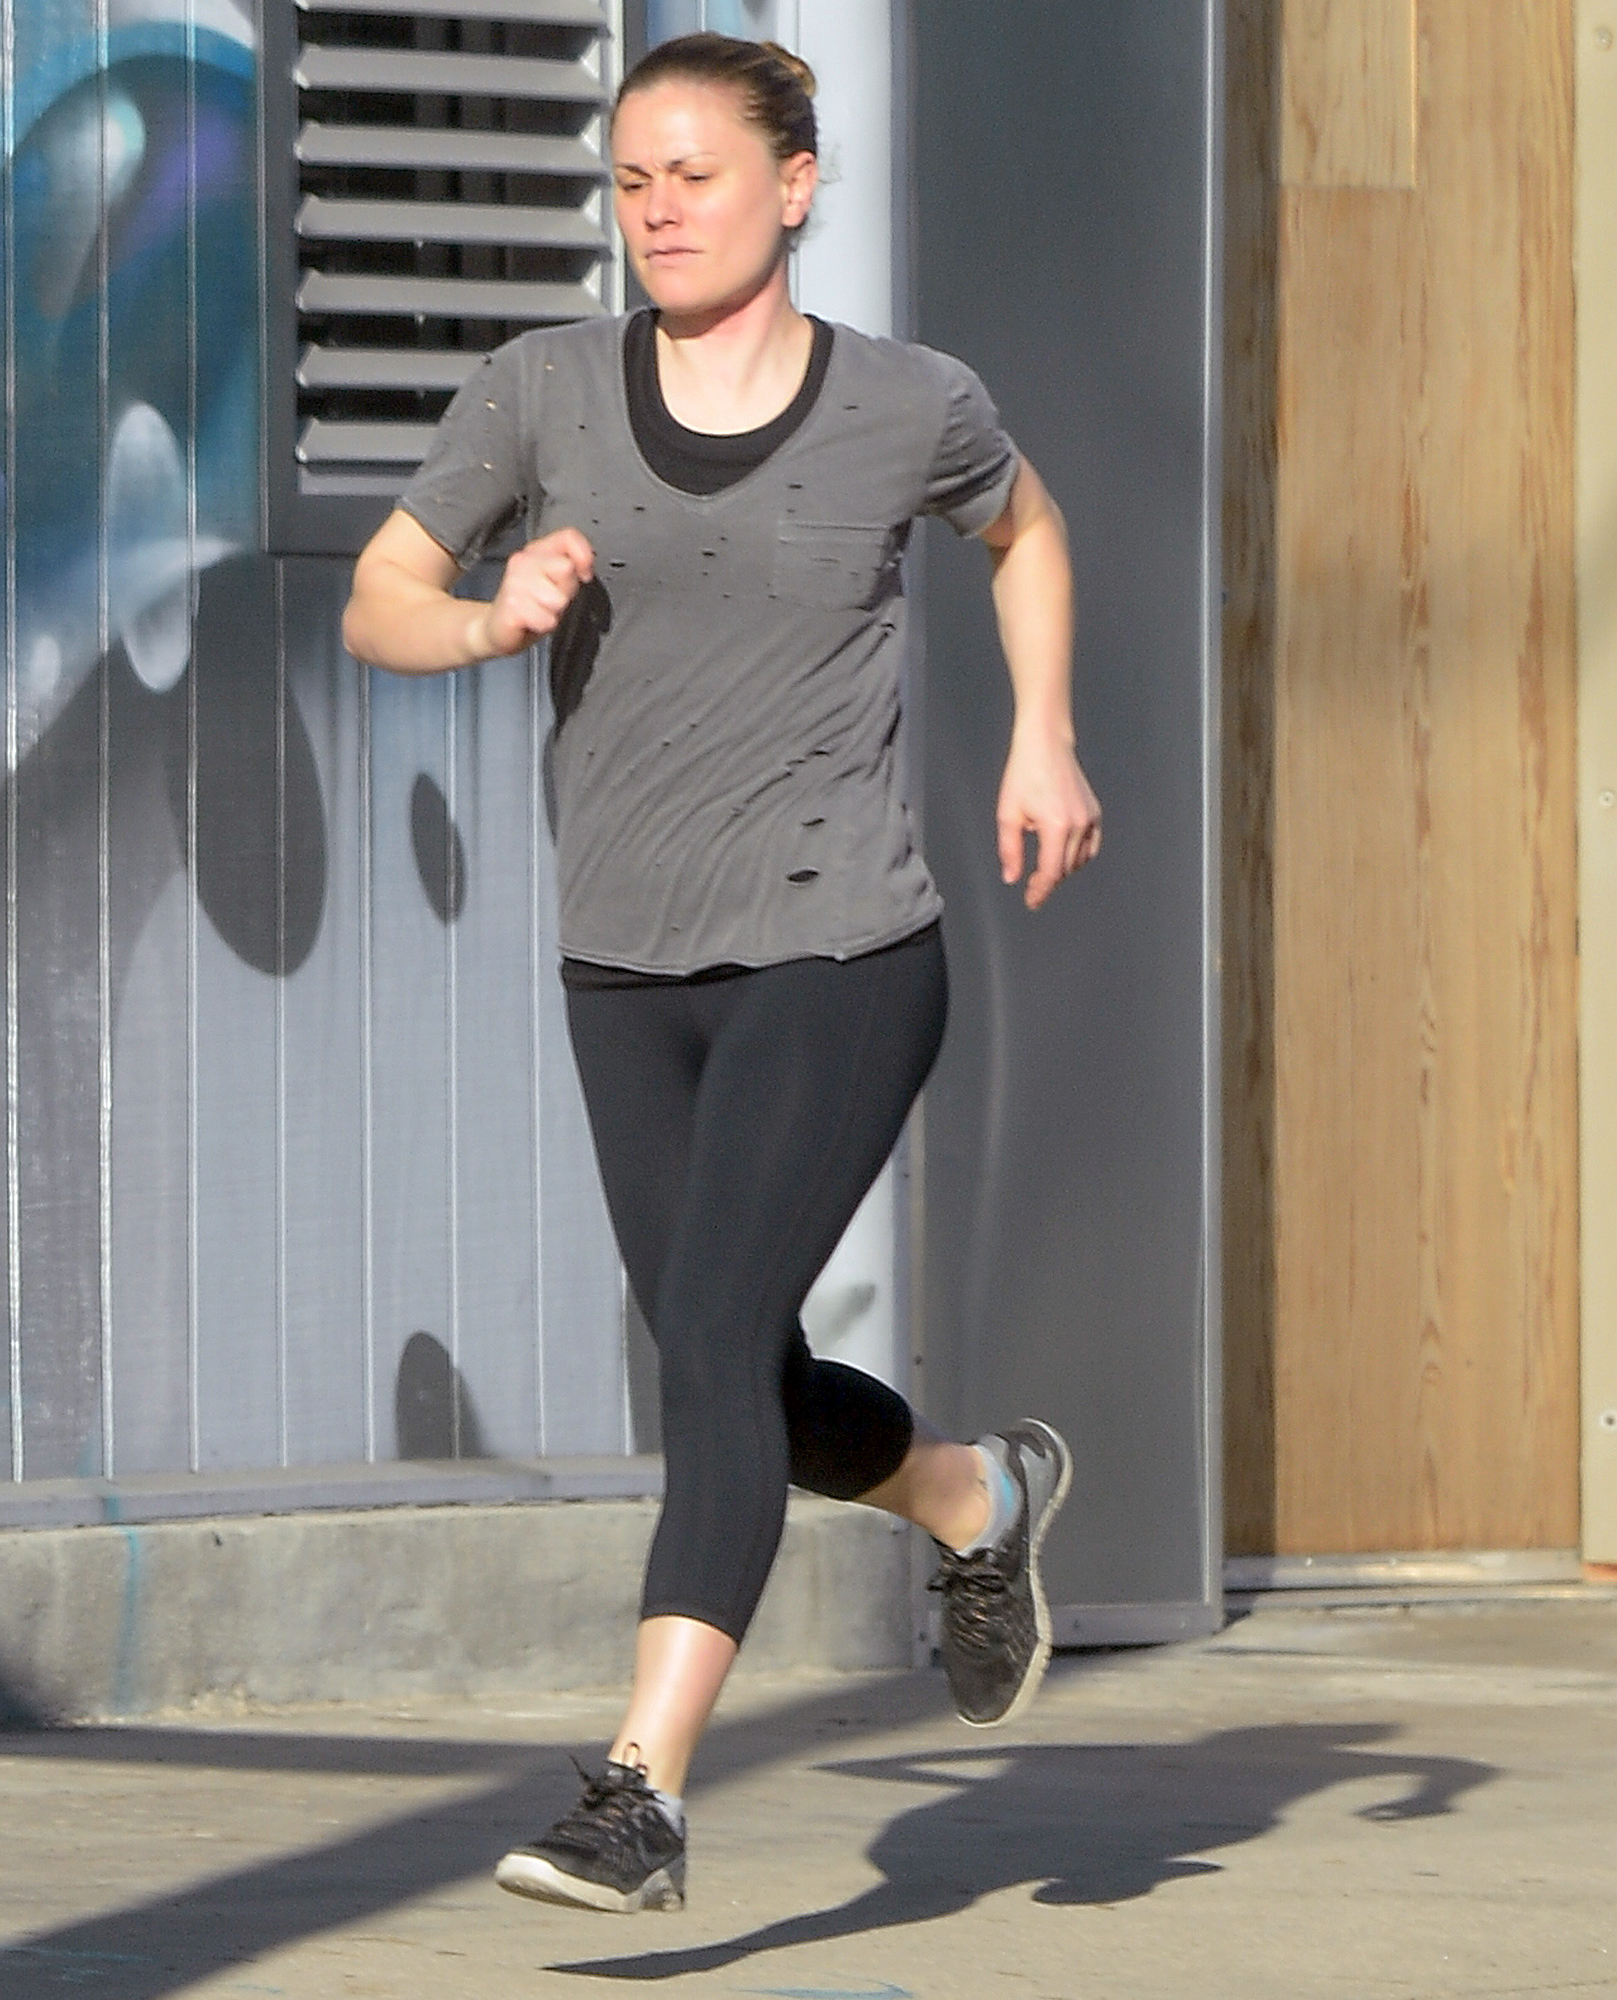 EXCLUSIVE: Anna Paquin goes Makeup Free While Out on a Jog in Los Angeles.